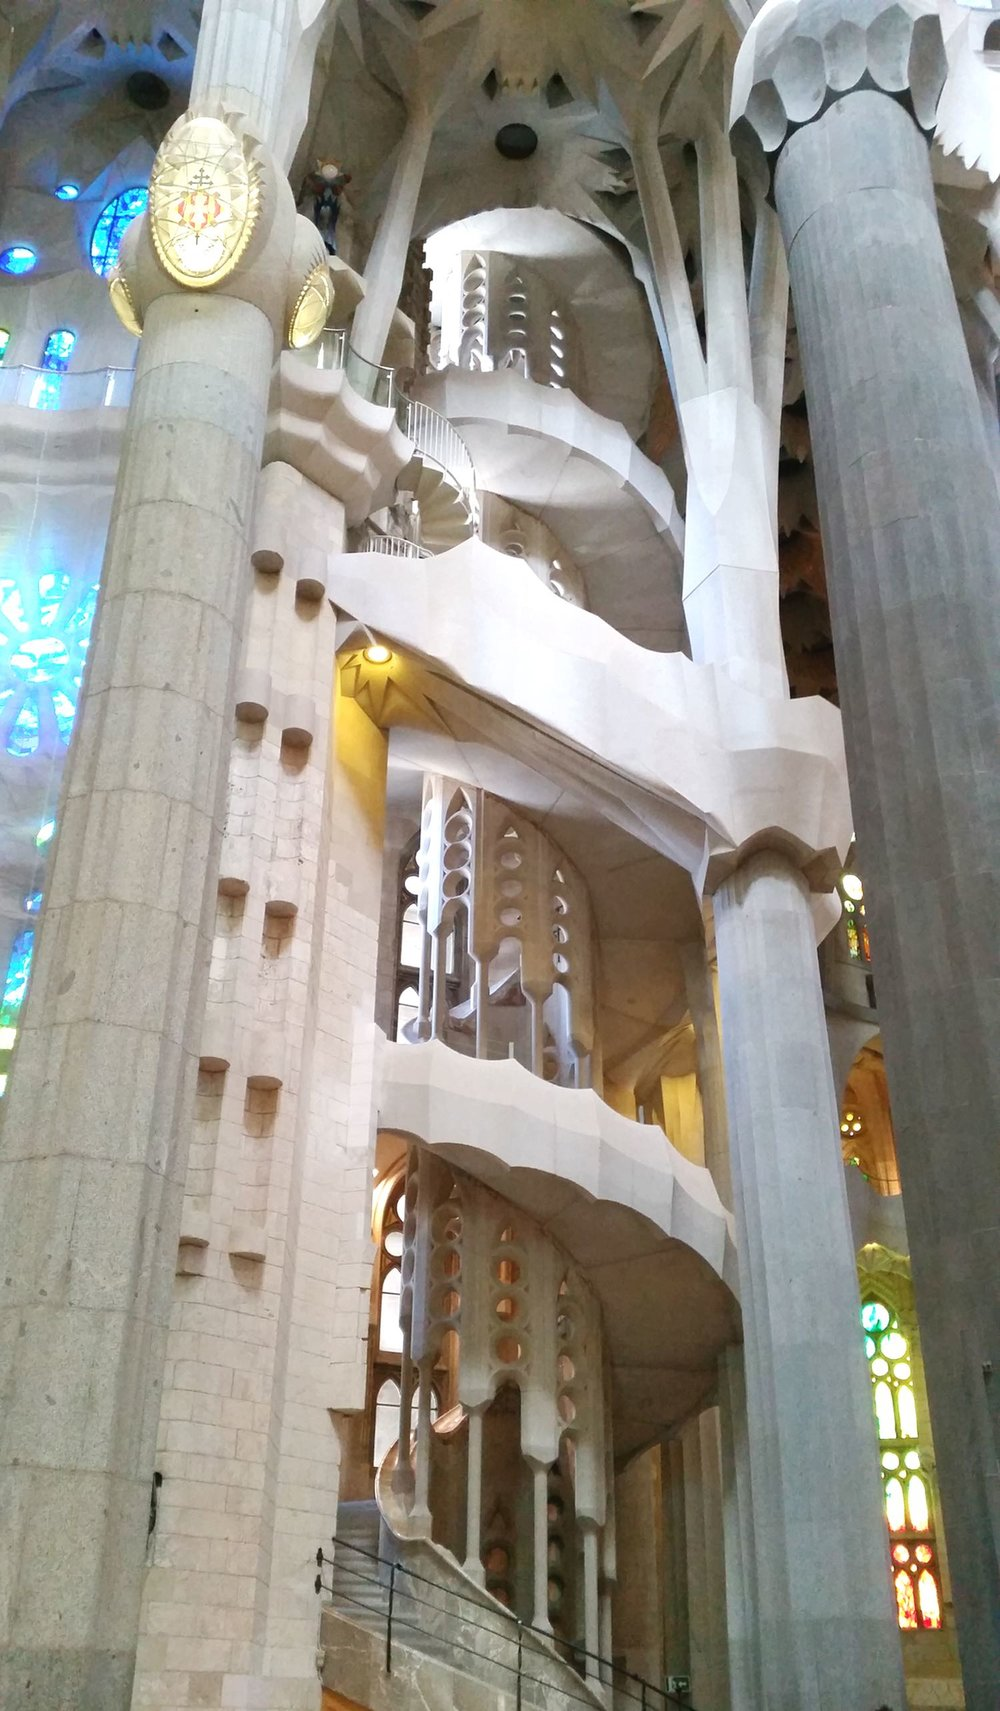 barcelona-spain-character-32-c32-globetrotter-sagrada-familia-inside-stairs